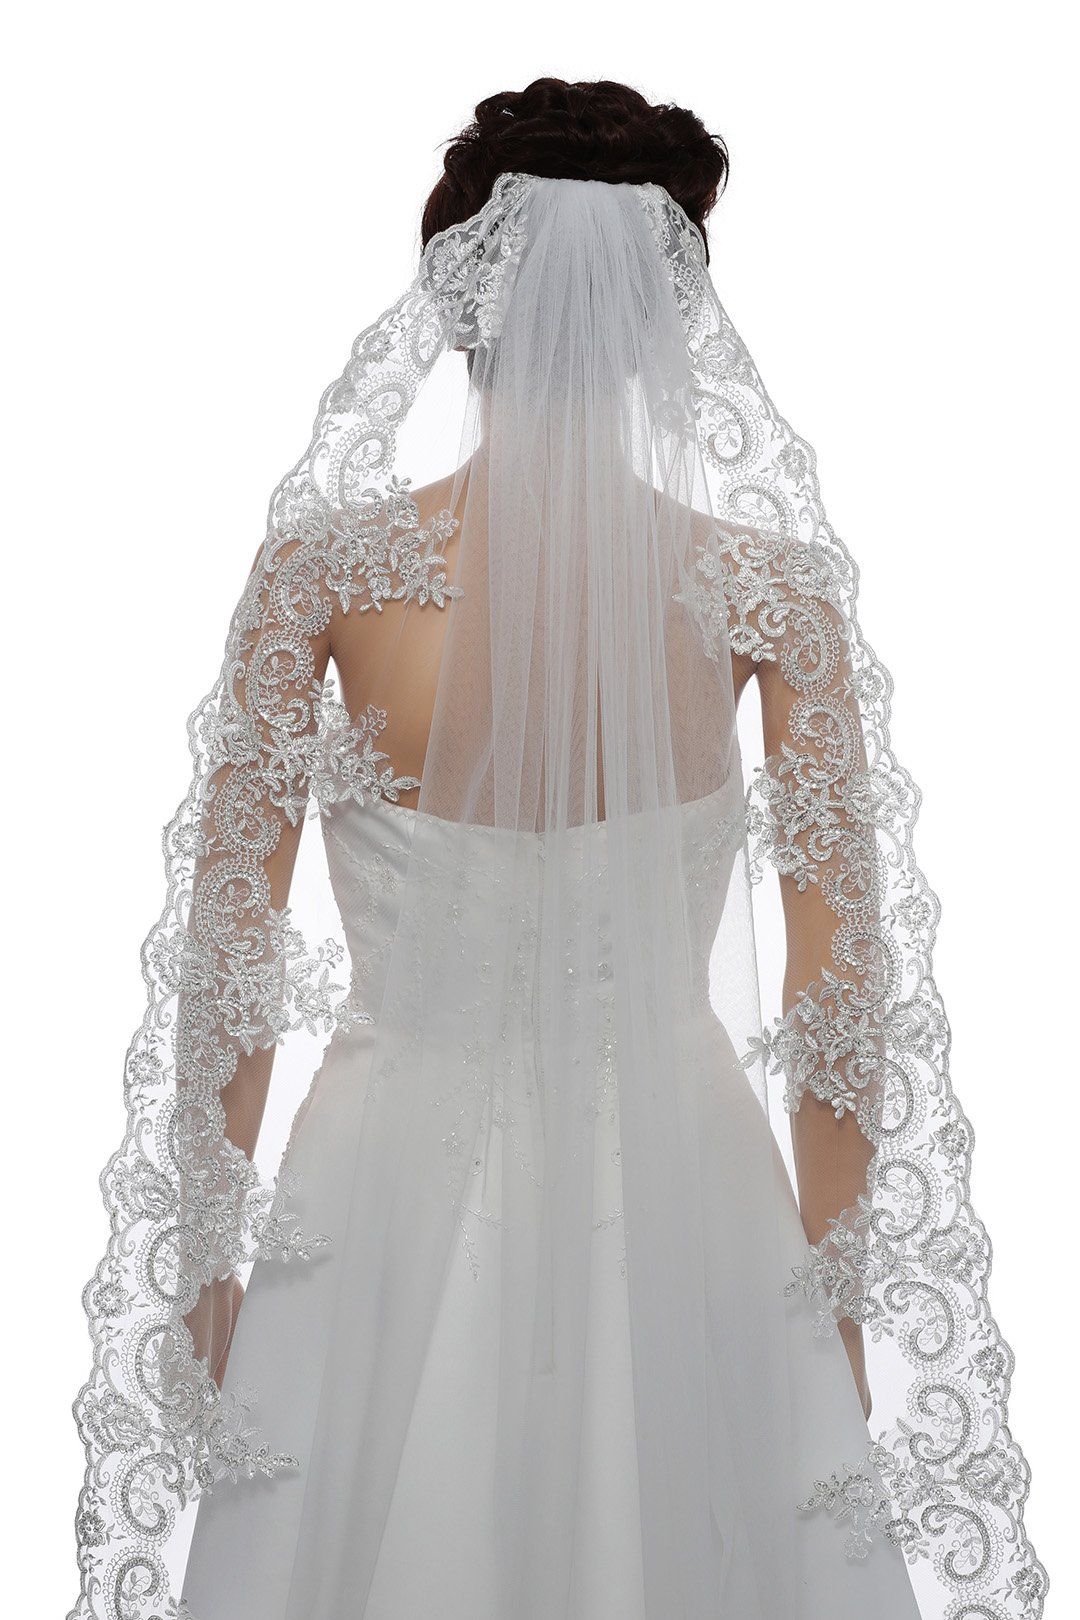 1T 1 Tier Georgeous 6'' Embroid Sequin Lace Veil - Ivory Cathedral Length 108'' V447